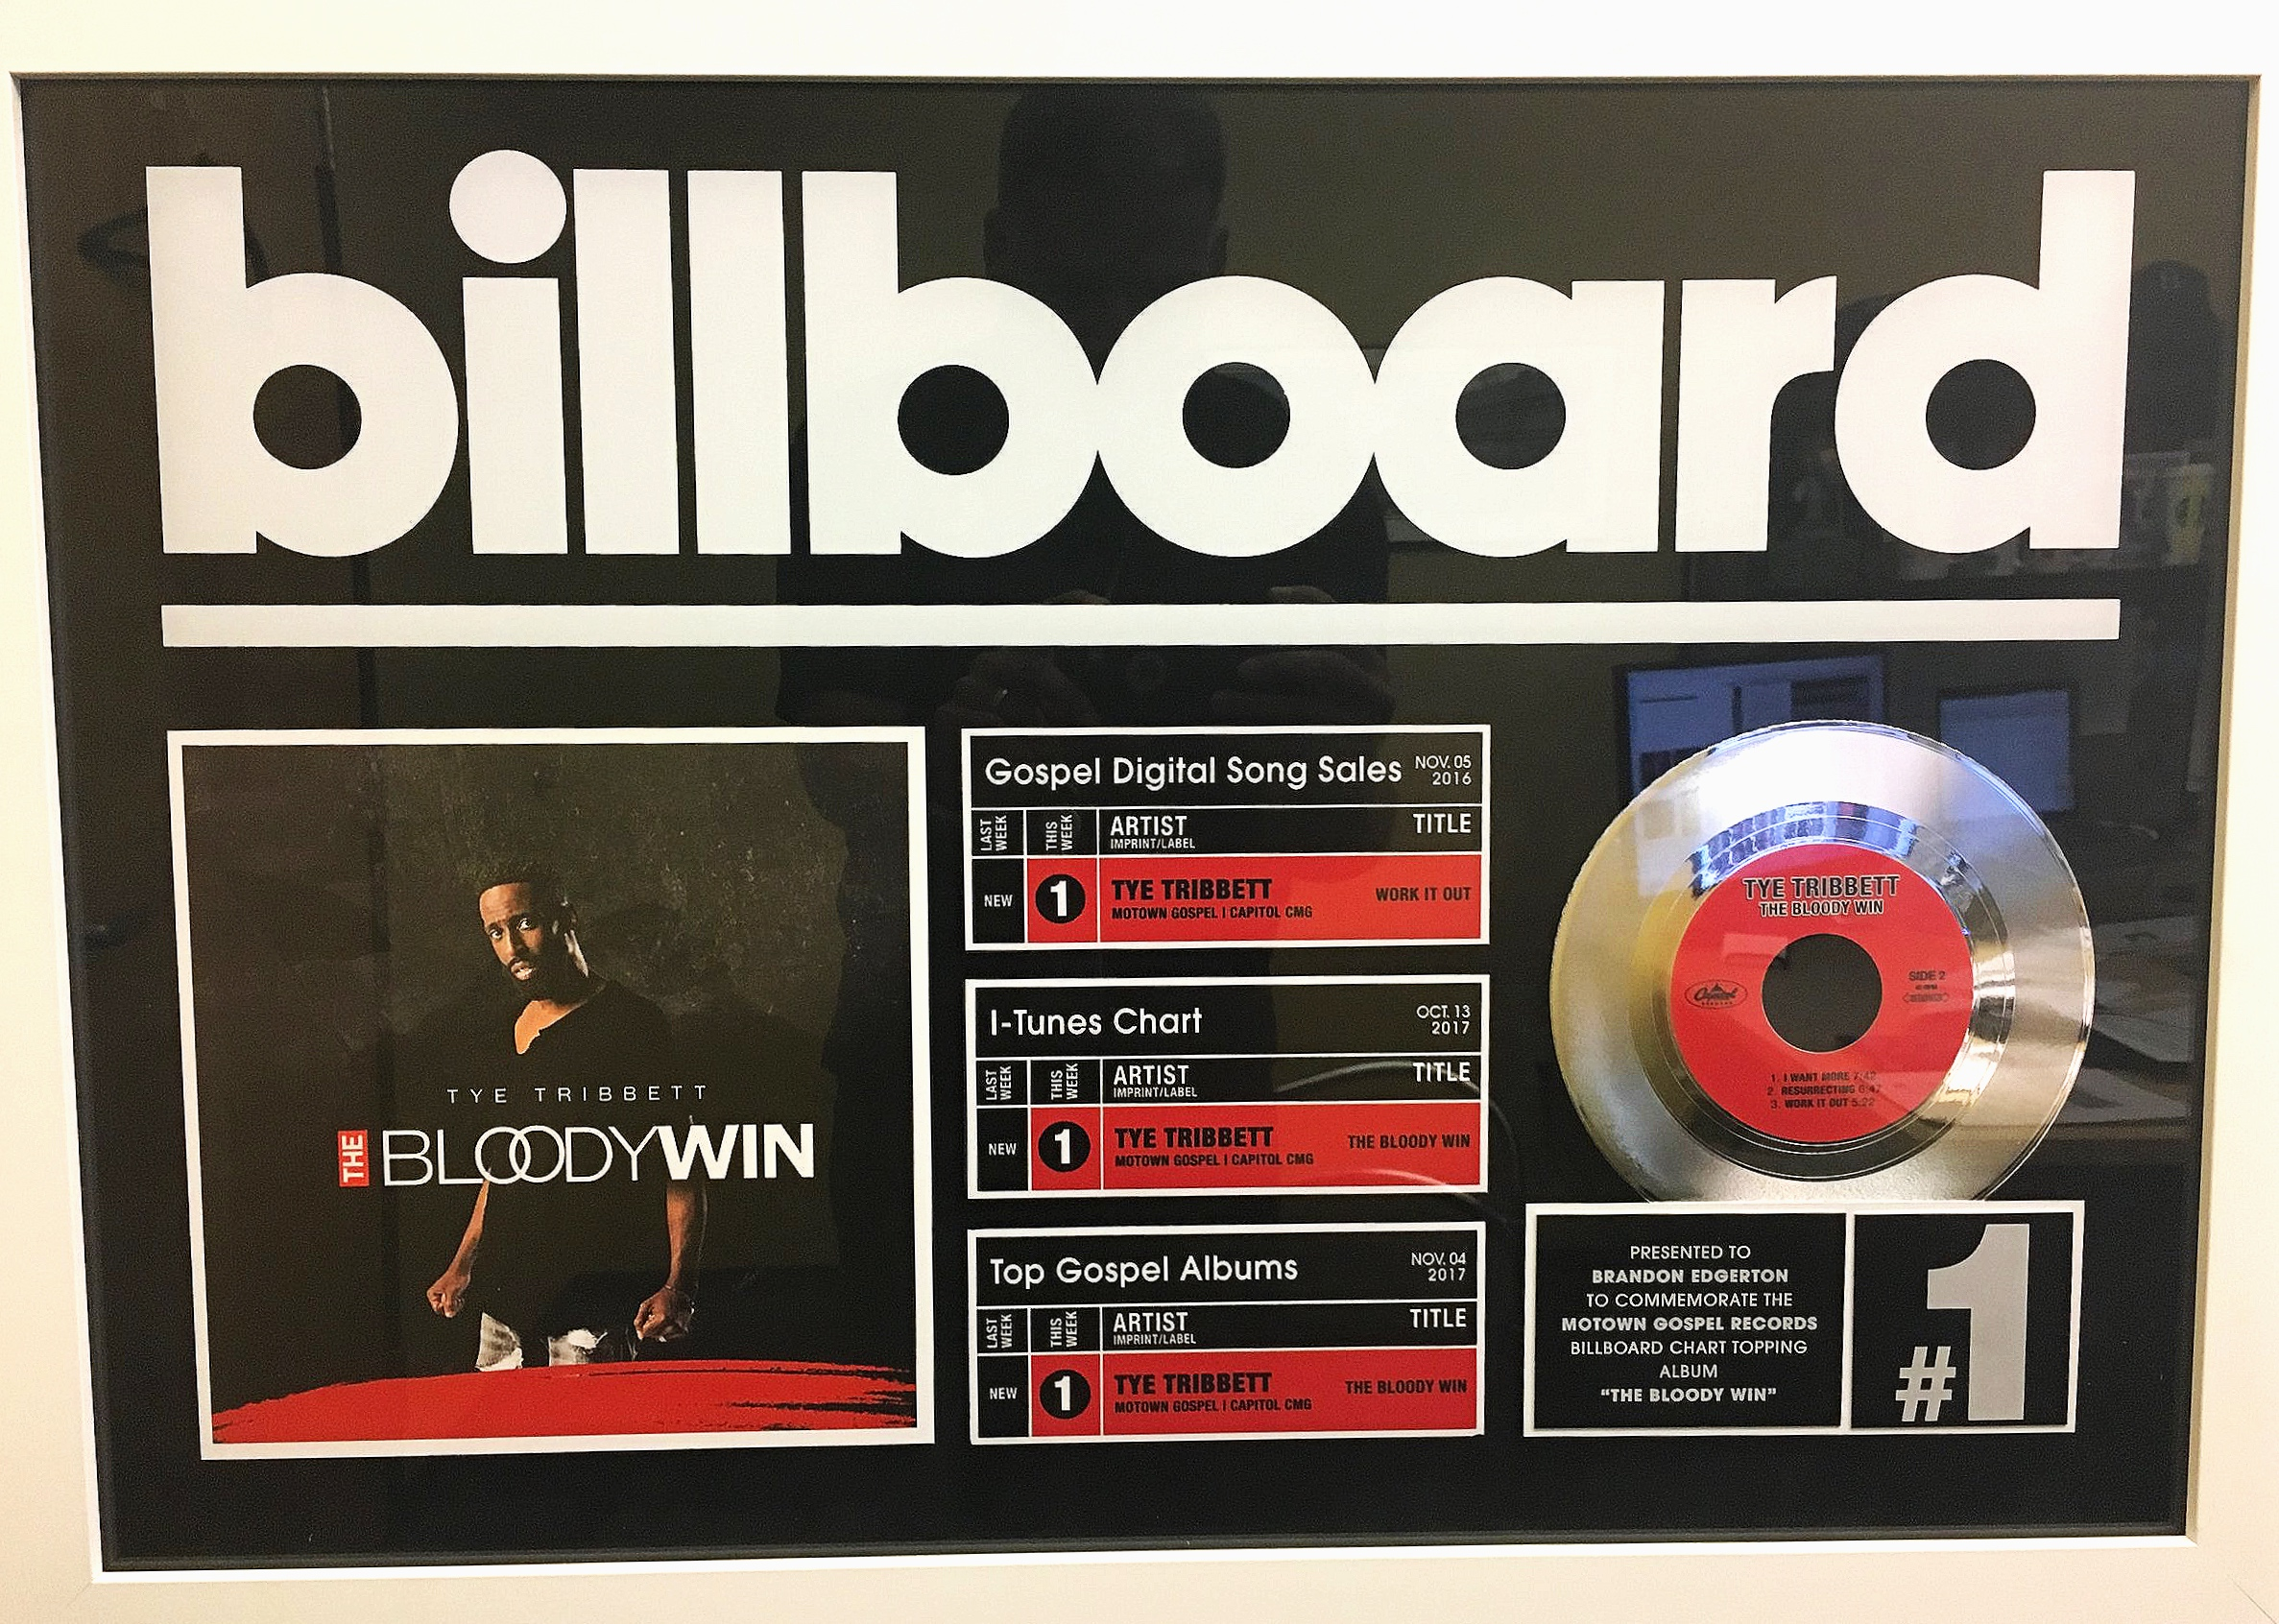 Billboard #1 Projects - - Billboard #1 Top Gospel Airplay - Donald Lawrence & Tri-City Singers feat. Leandria Johnson - Deliver Me- Billboard #1 Top Gospel Album - Various Artists, WOW 2019- Billboard #1 Top Gospel Album - Elevation Collective, Evidence- Billboard #1 Top Gospel Album - Various Artists, WOW 2018- Billboard #1 Top Gospel Album - Various Artists, Snoop Dogg Presents The Bible of Love- Billboard #1 Top Gospel Album - Koryn Hawthorne, Unstoppable- Billboard #1 Top Gospel Album - Tye Tribbett, The Bloody Win- Billboard #1 Top Gospel Album - Travis Greene, Crossover: Live From Music City- Billboard #1 Top Christmas Song - Backstreet Boys, Christmas Time Again- Billboard #1 Top Gospel Album - Heather Headley, Audience Of One- Billboard #1 Top Gospel Album - The Clark Sisters, Live: One Last Time- Billboard #1 Top Gospel Album - Kierra